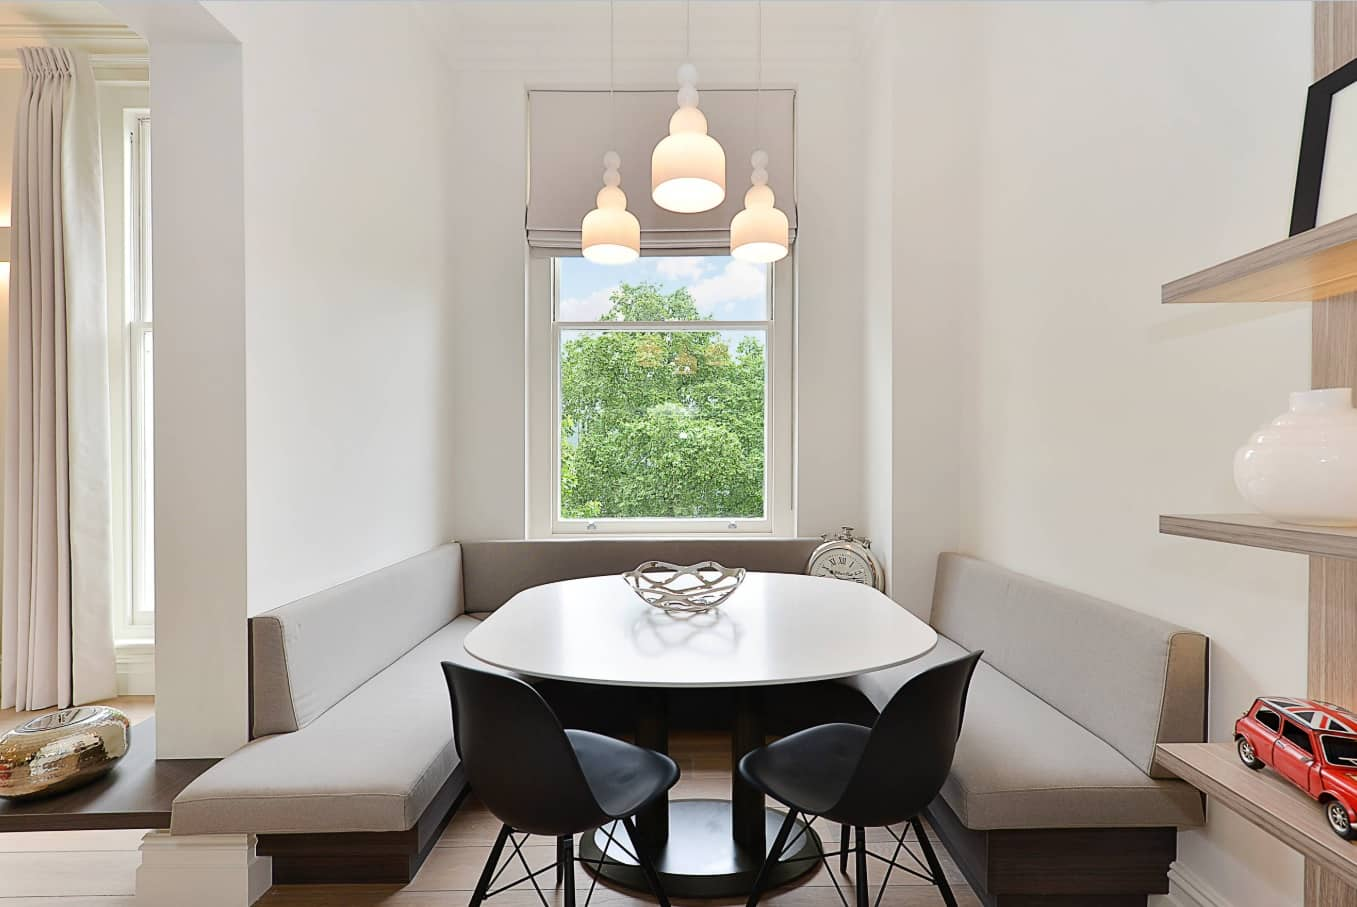 Tiny Home Interiors that Can Inspire Making Your Space more Functional. Small cozy dining room with gray sofas and black chairs